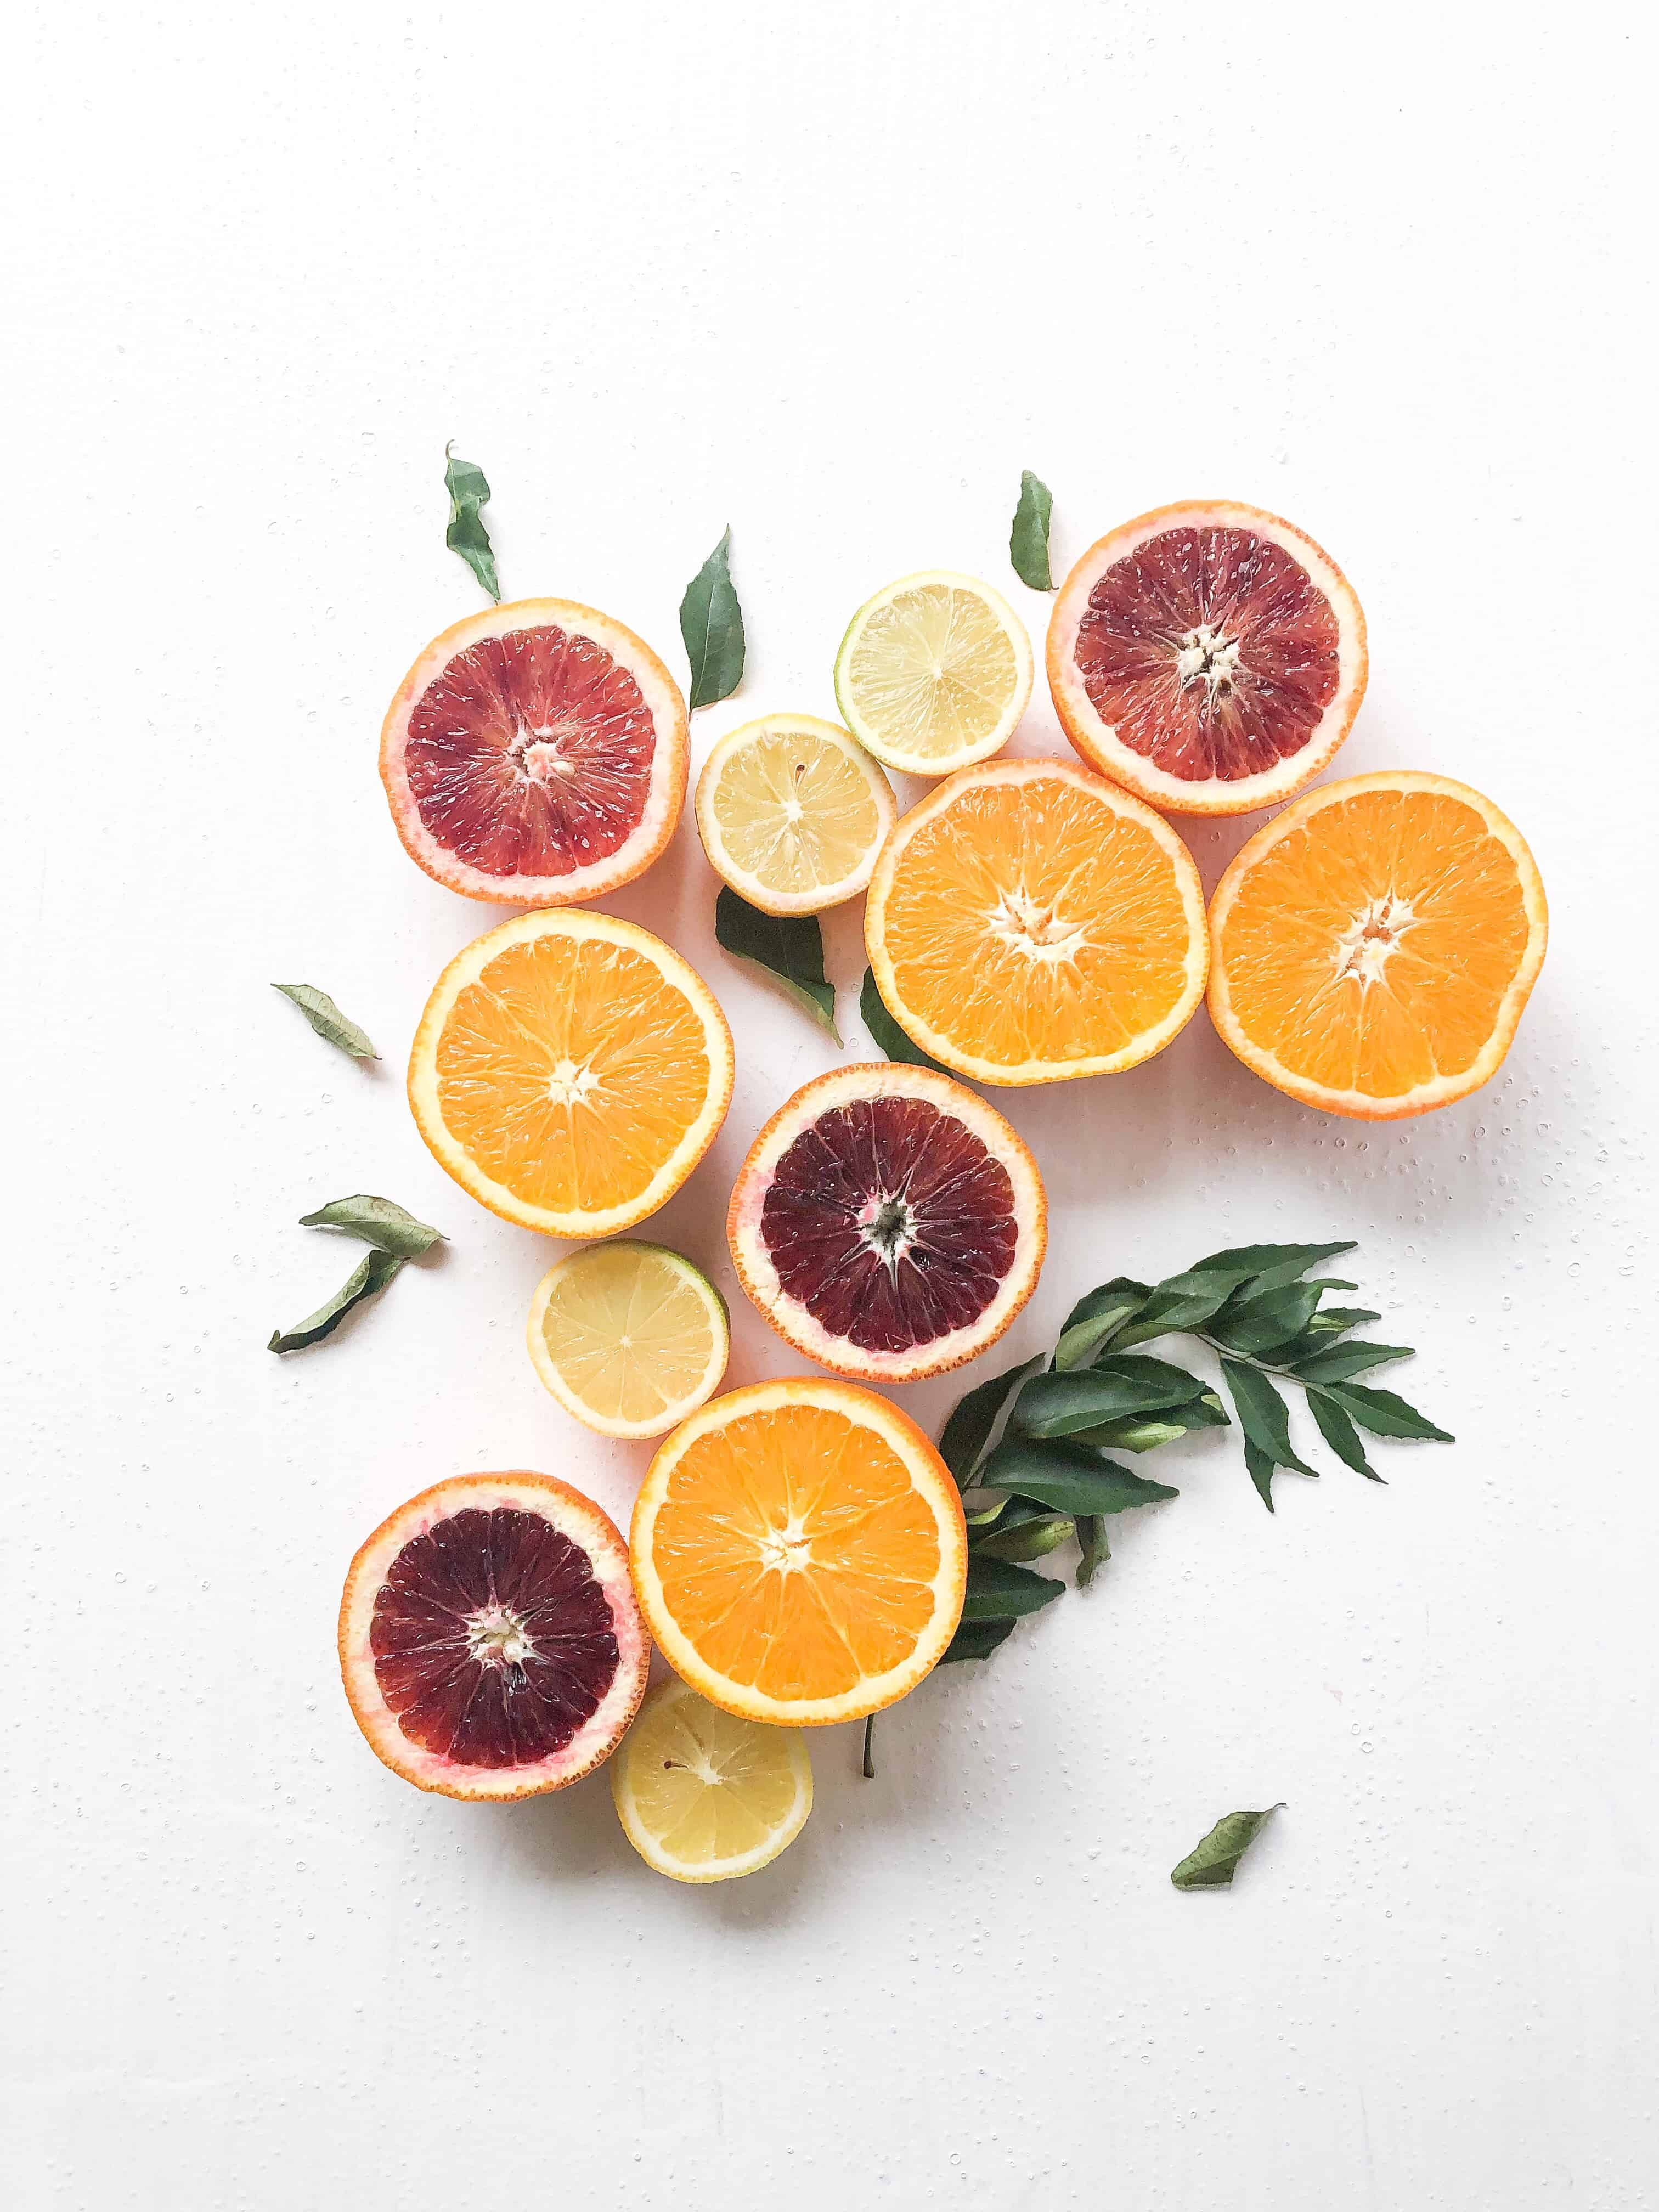 Oranges, blood oranges, and lemons with leaves on a white background